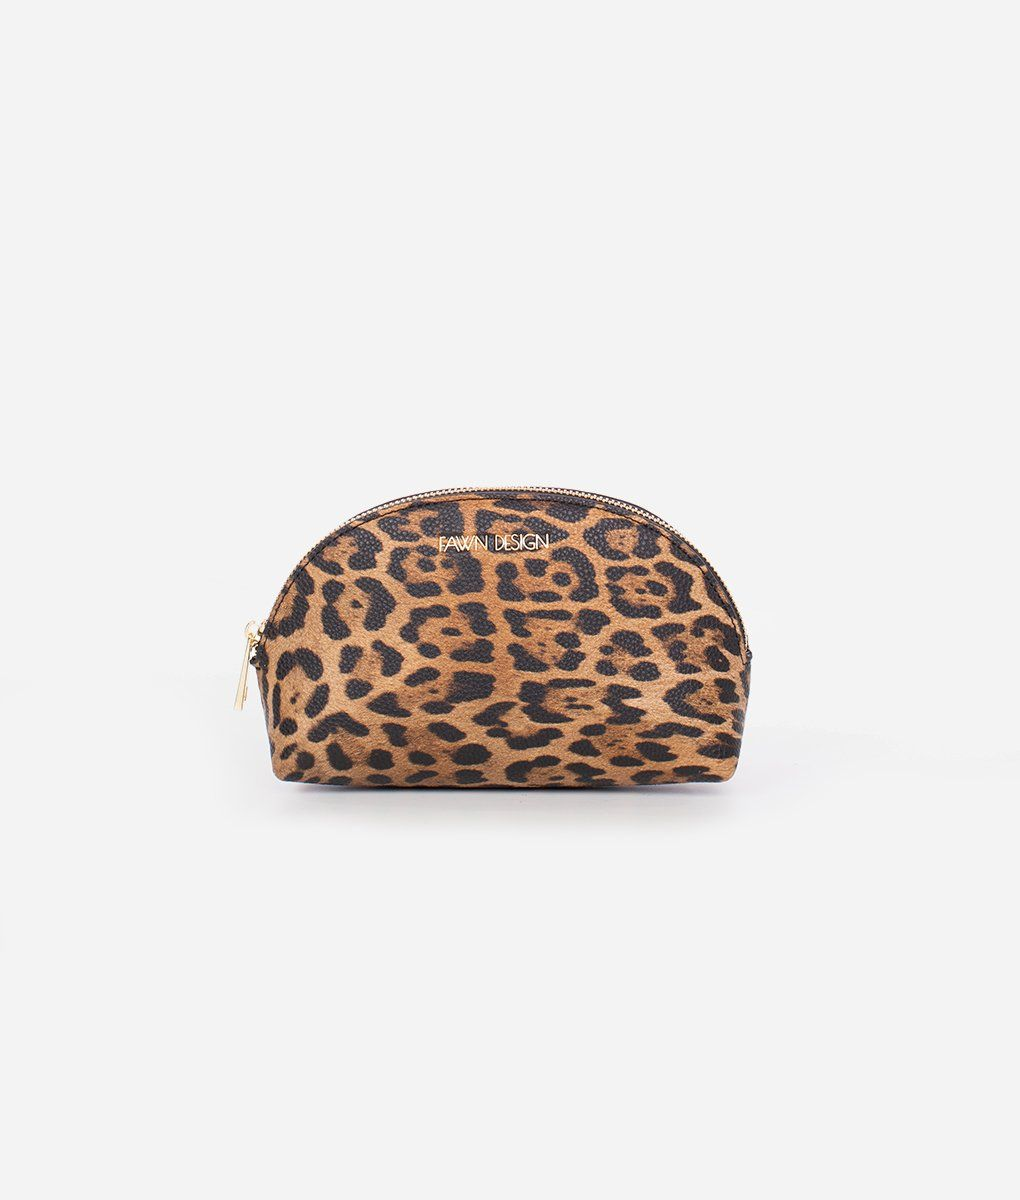 The Cosmetic Bag  Leopard (Small) - Cosmetic bag, Small cosmetic bags, Bags, Cosmetics, Cosmetic items, Small accessories - The new Fawn Design Small Cosmetic Bag in Leopard is the cat's meow! Store your makeup essentials in this sleek zippered bag  The Small Cosmetic Bag can fit most makeup and cosmetic items, plus an eyelash curler, tweezers, Qtips, or cotton pads  The bag can also be used to store jewelry or small accessories and electronic items, such as earbuds and charging cords, when you travel   Made of premium pebbled vegan leather Gold ziptop opening Easytoclean nylon lining    DIMENSIONS  Size8 x 6 x 3 Weight approximately 7oz